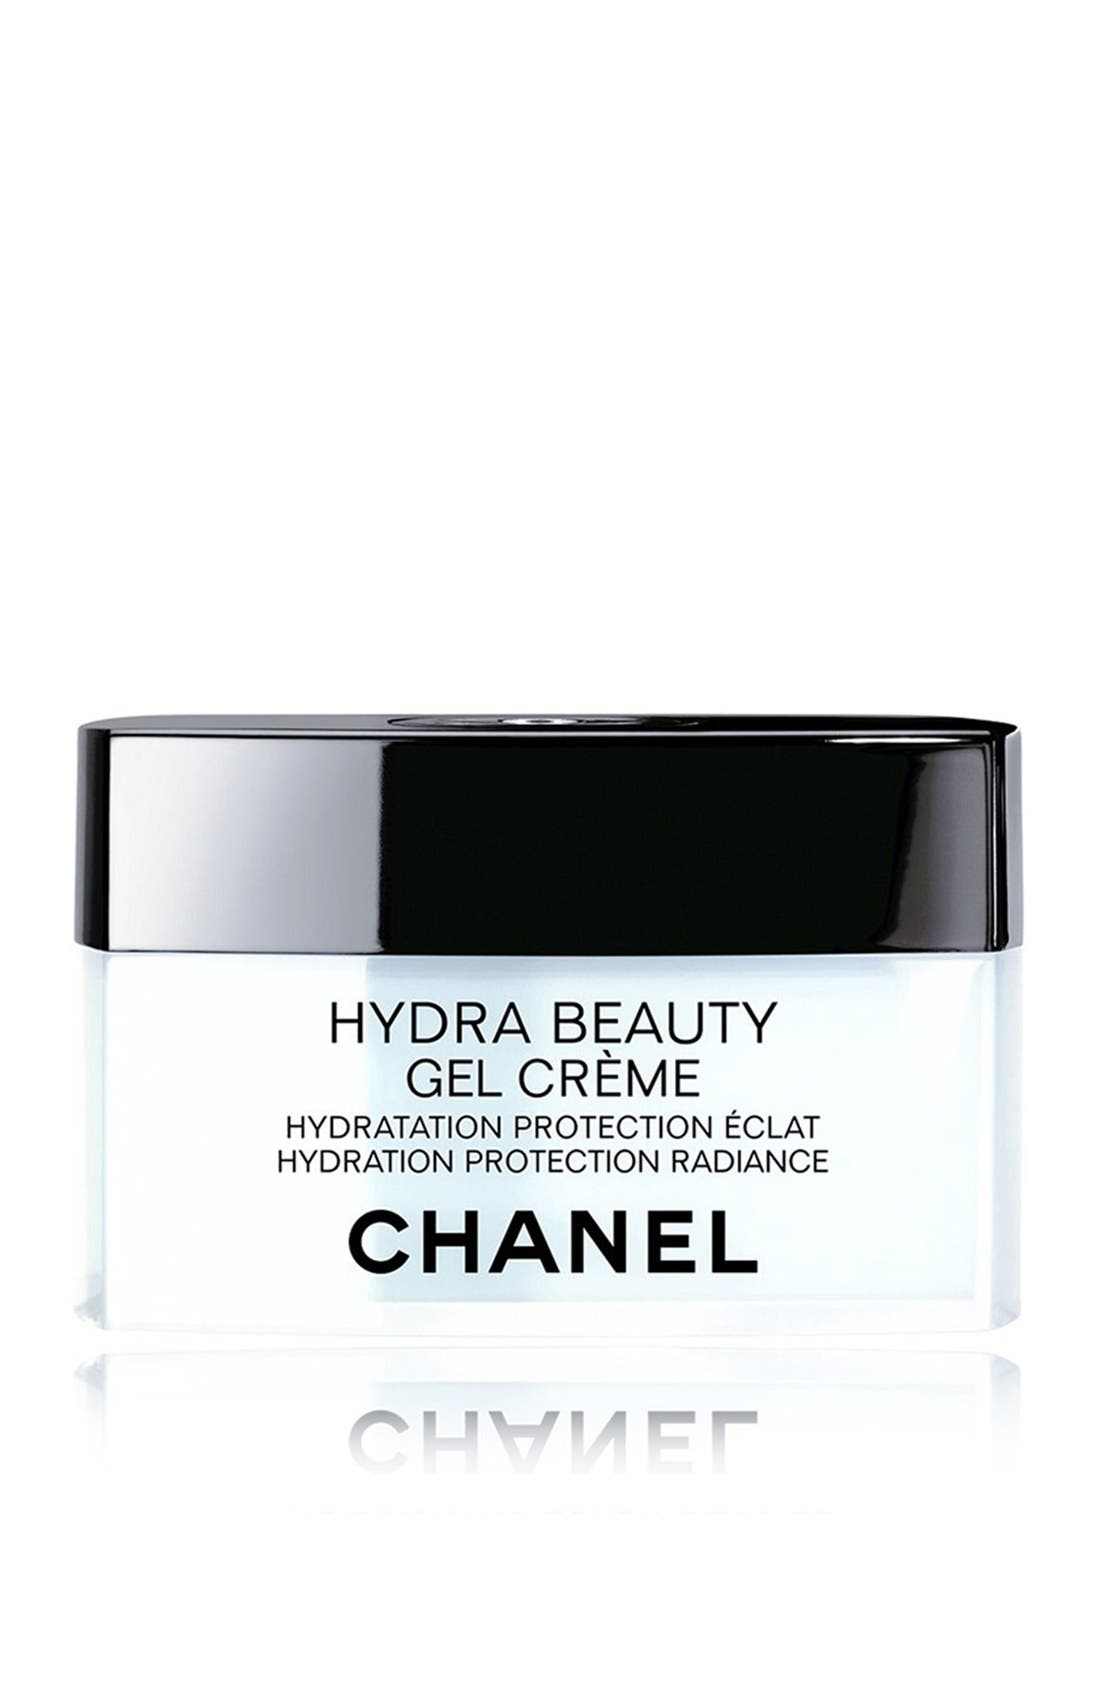 HYDRA BEAUTY GEL CRÈME<br />Hydration Protection Radiance,                             Main thumbnail 1, color,                             NO COLOR